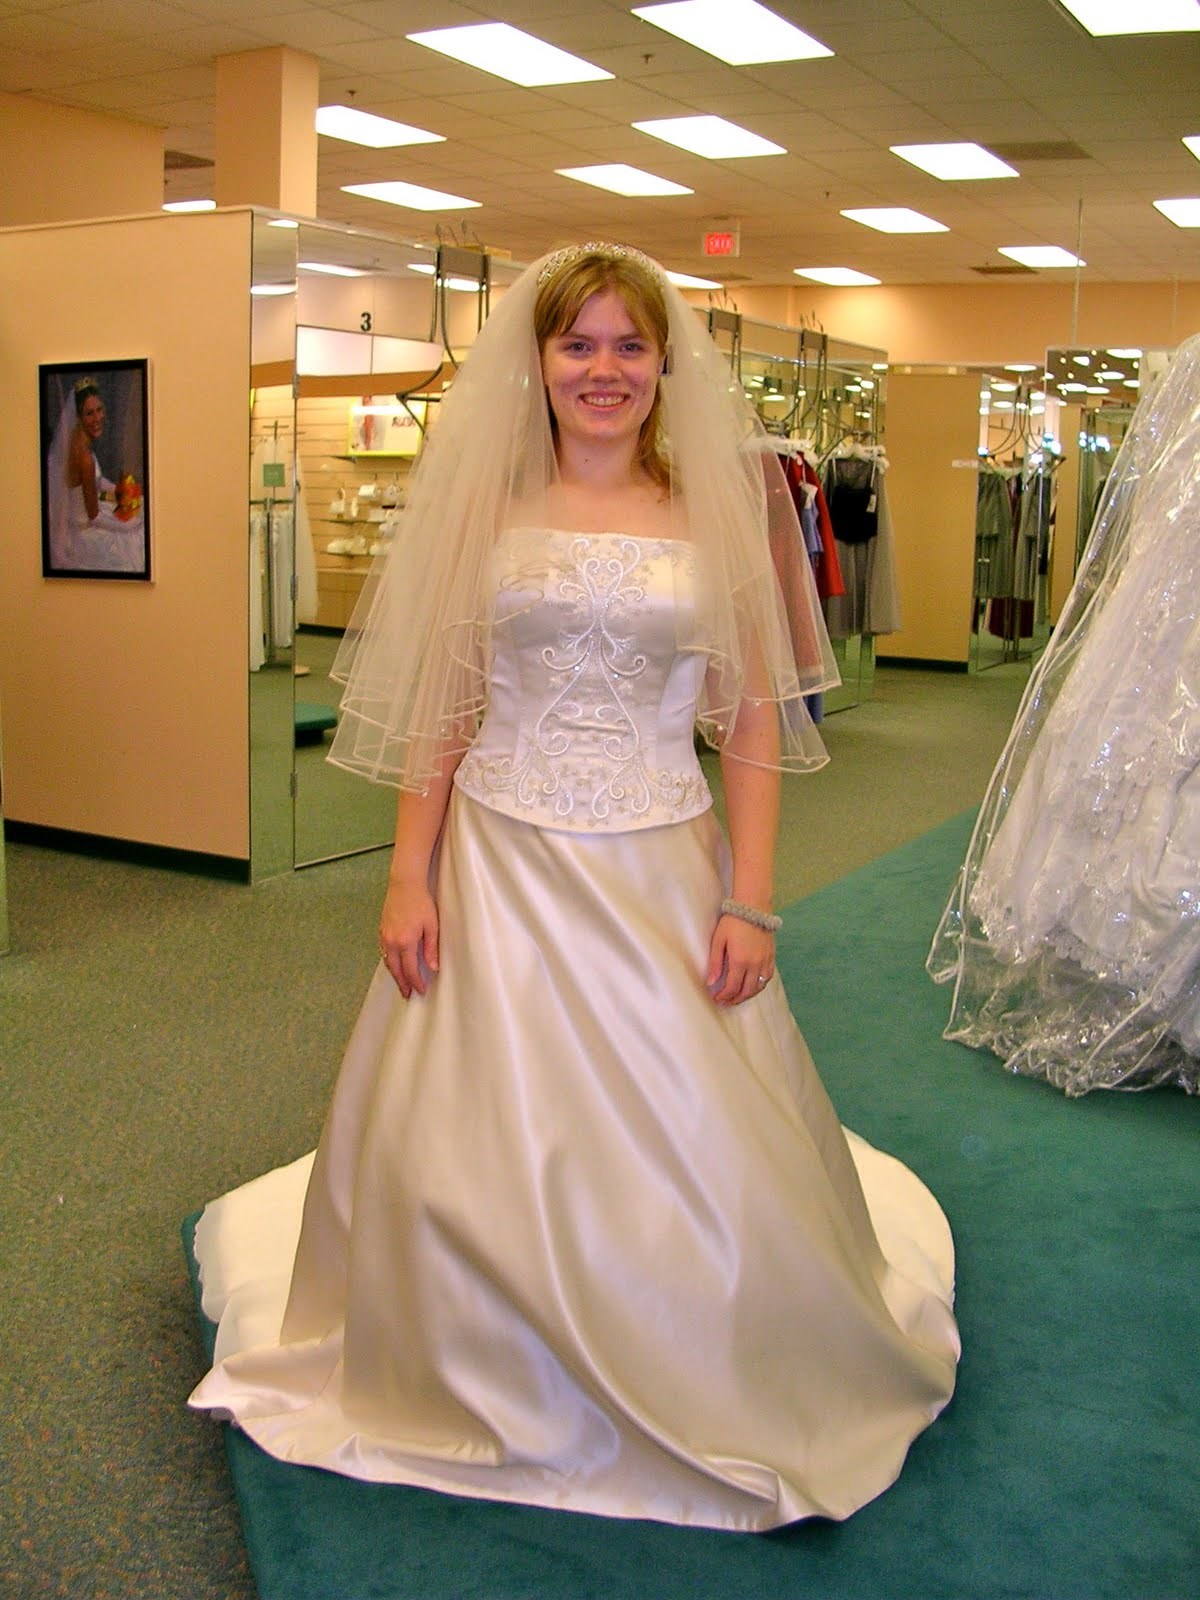 Evgen fashion blog sissies in wedding dresses for Wedding dress up games for girls and boys